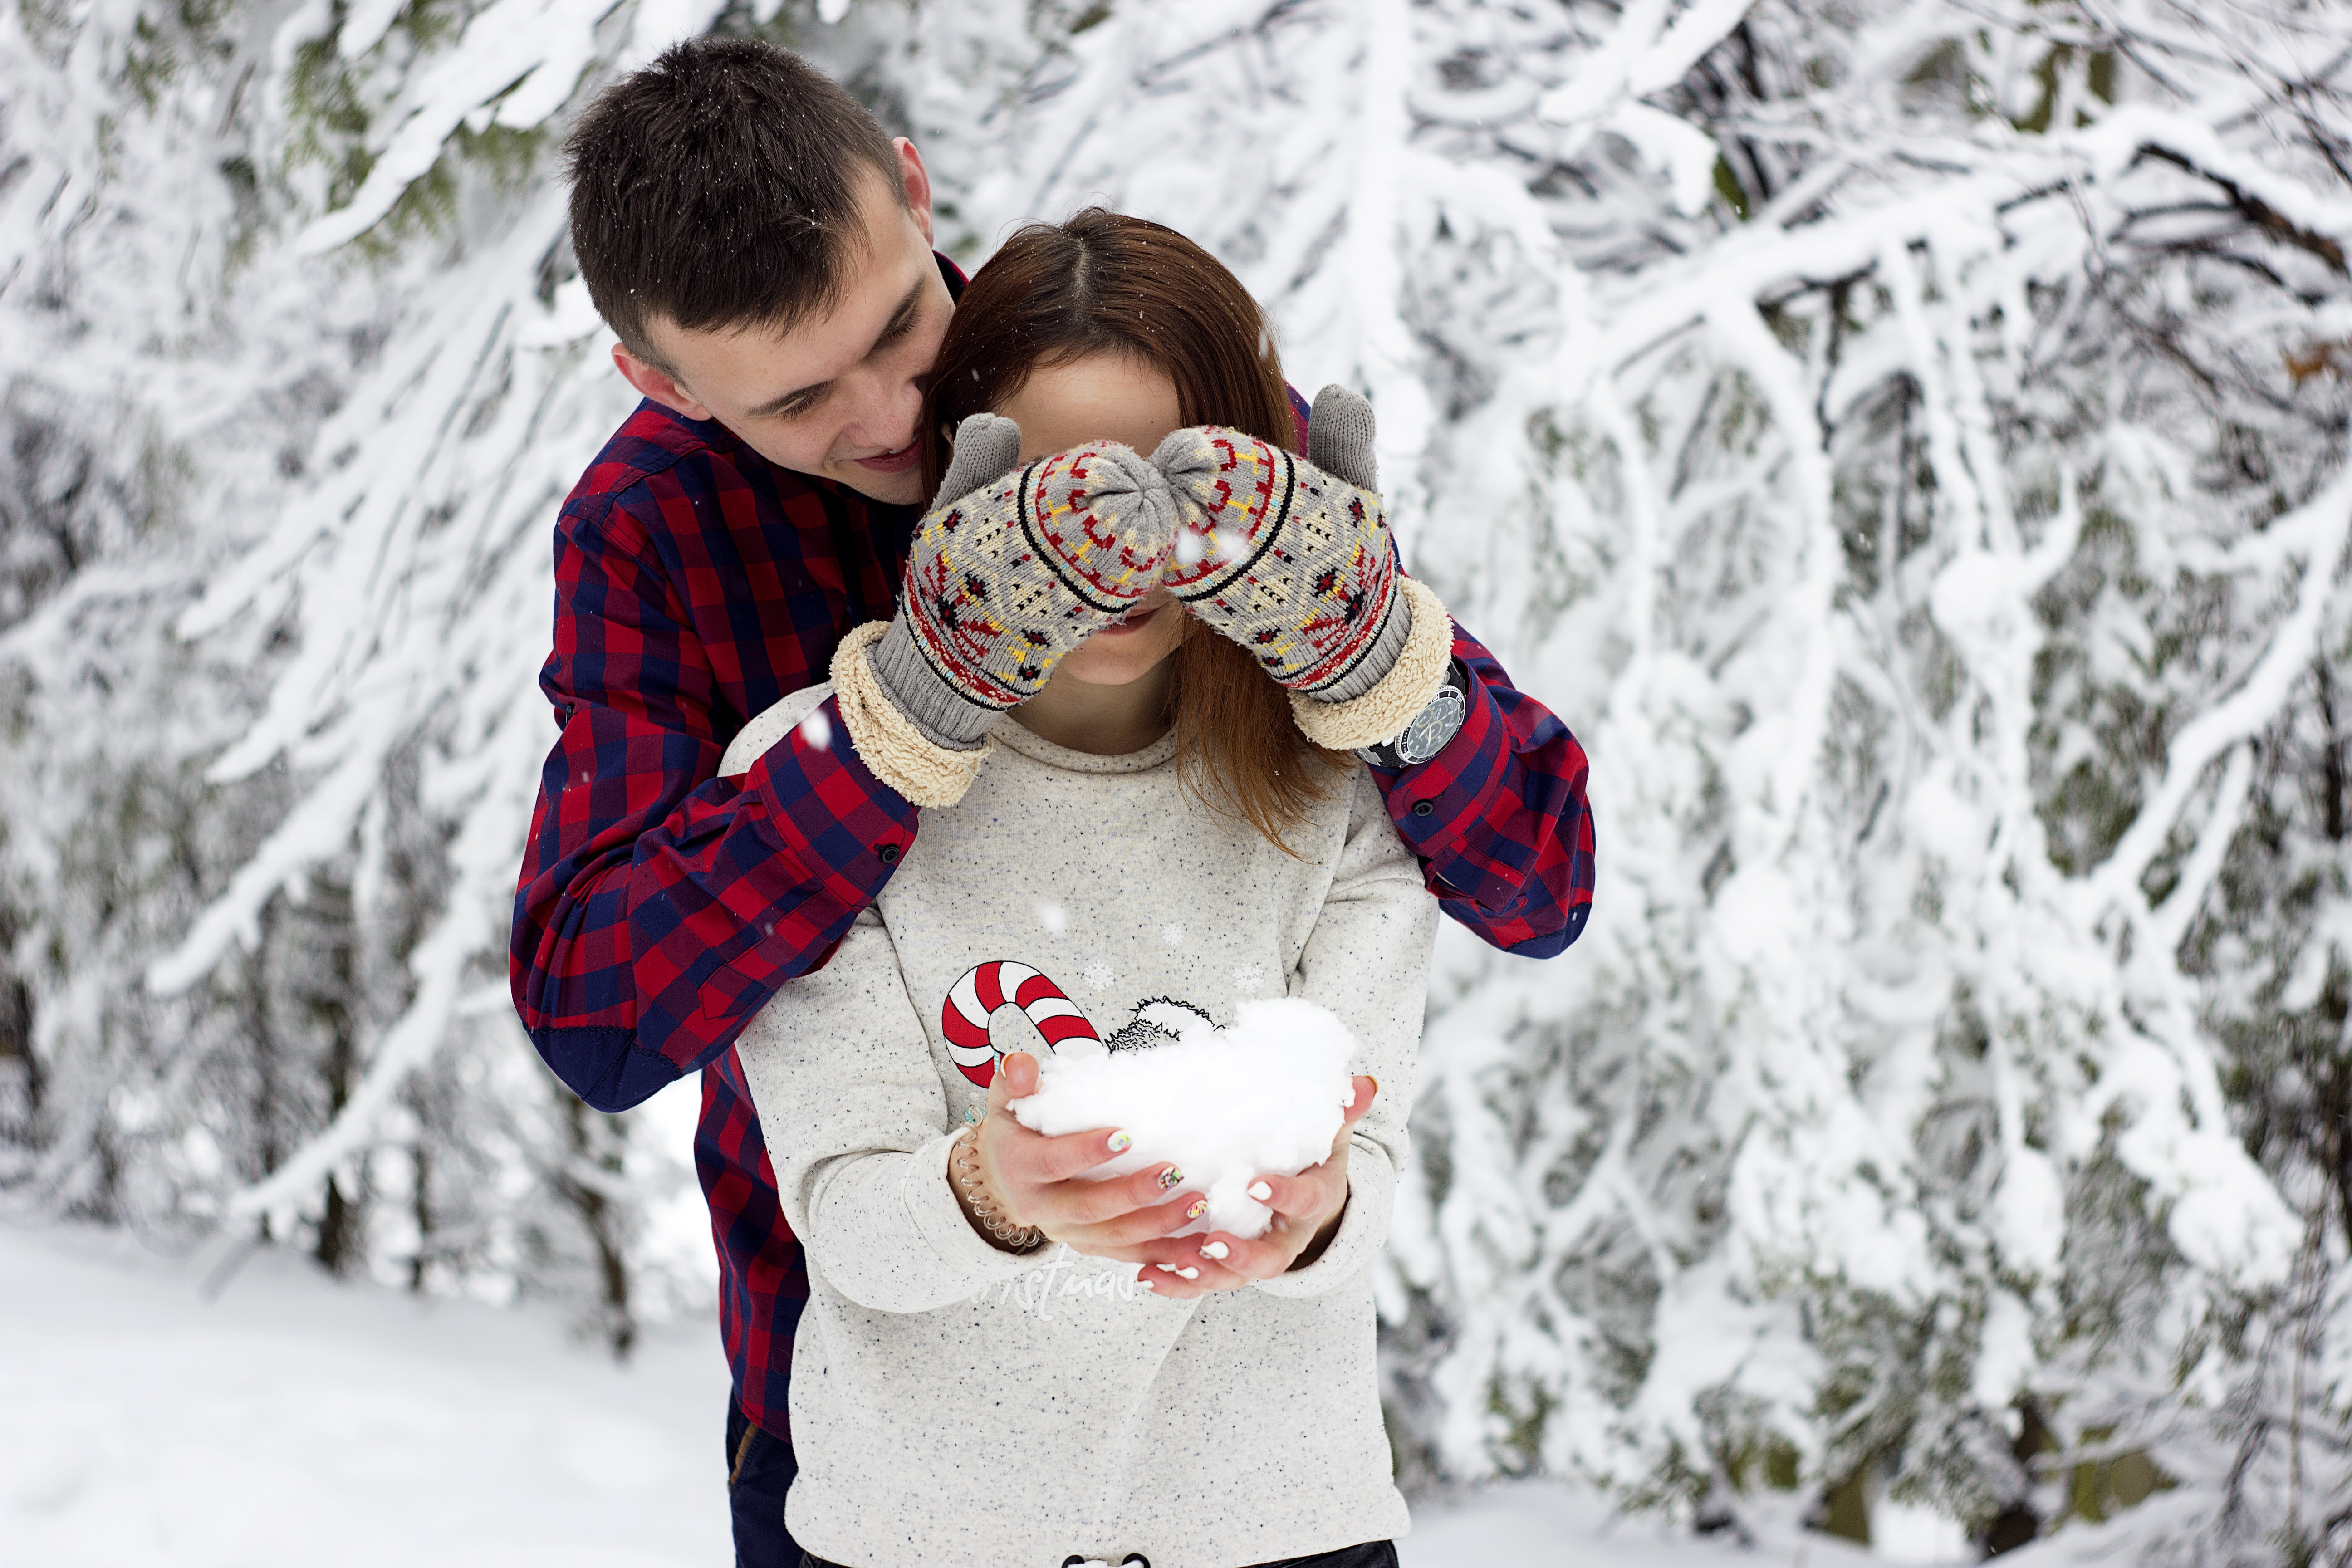 man in red and blue gingham sweatshirt covering eye of girl in gray sweatshirt while holding iceball